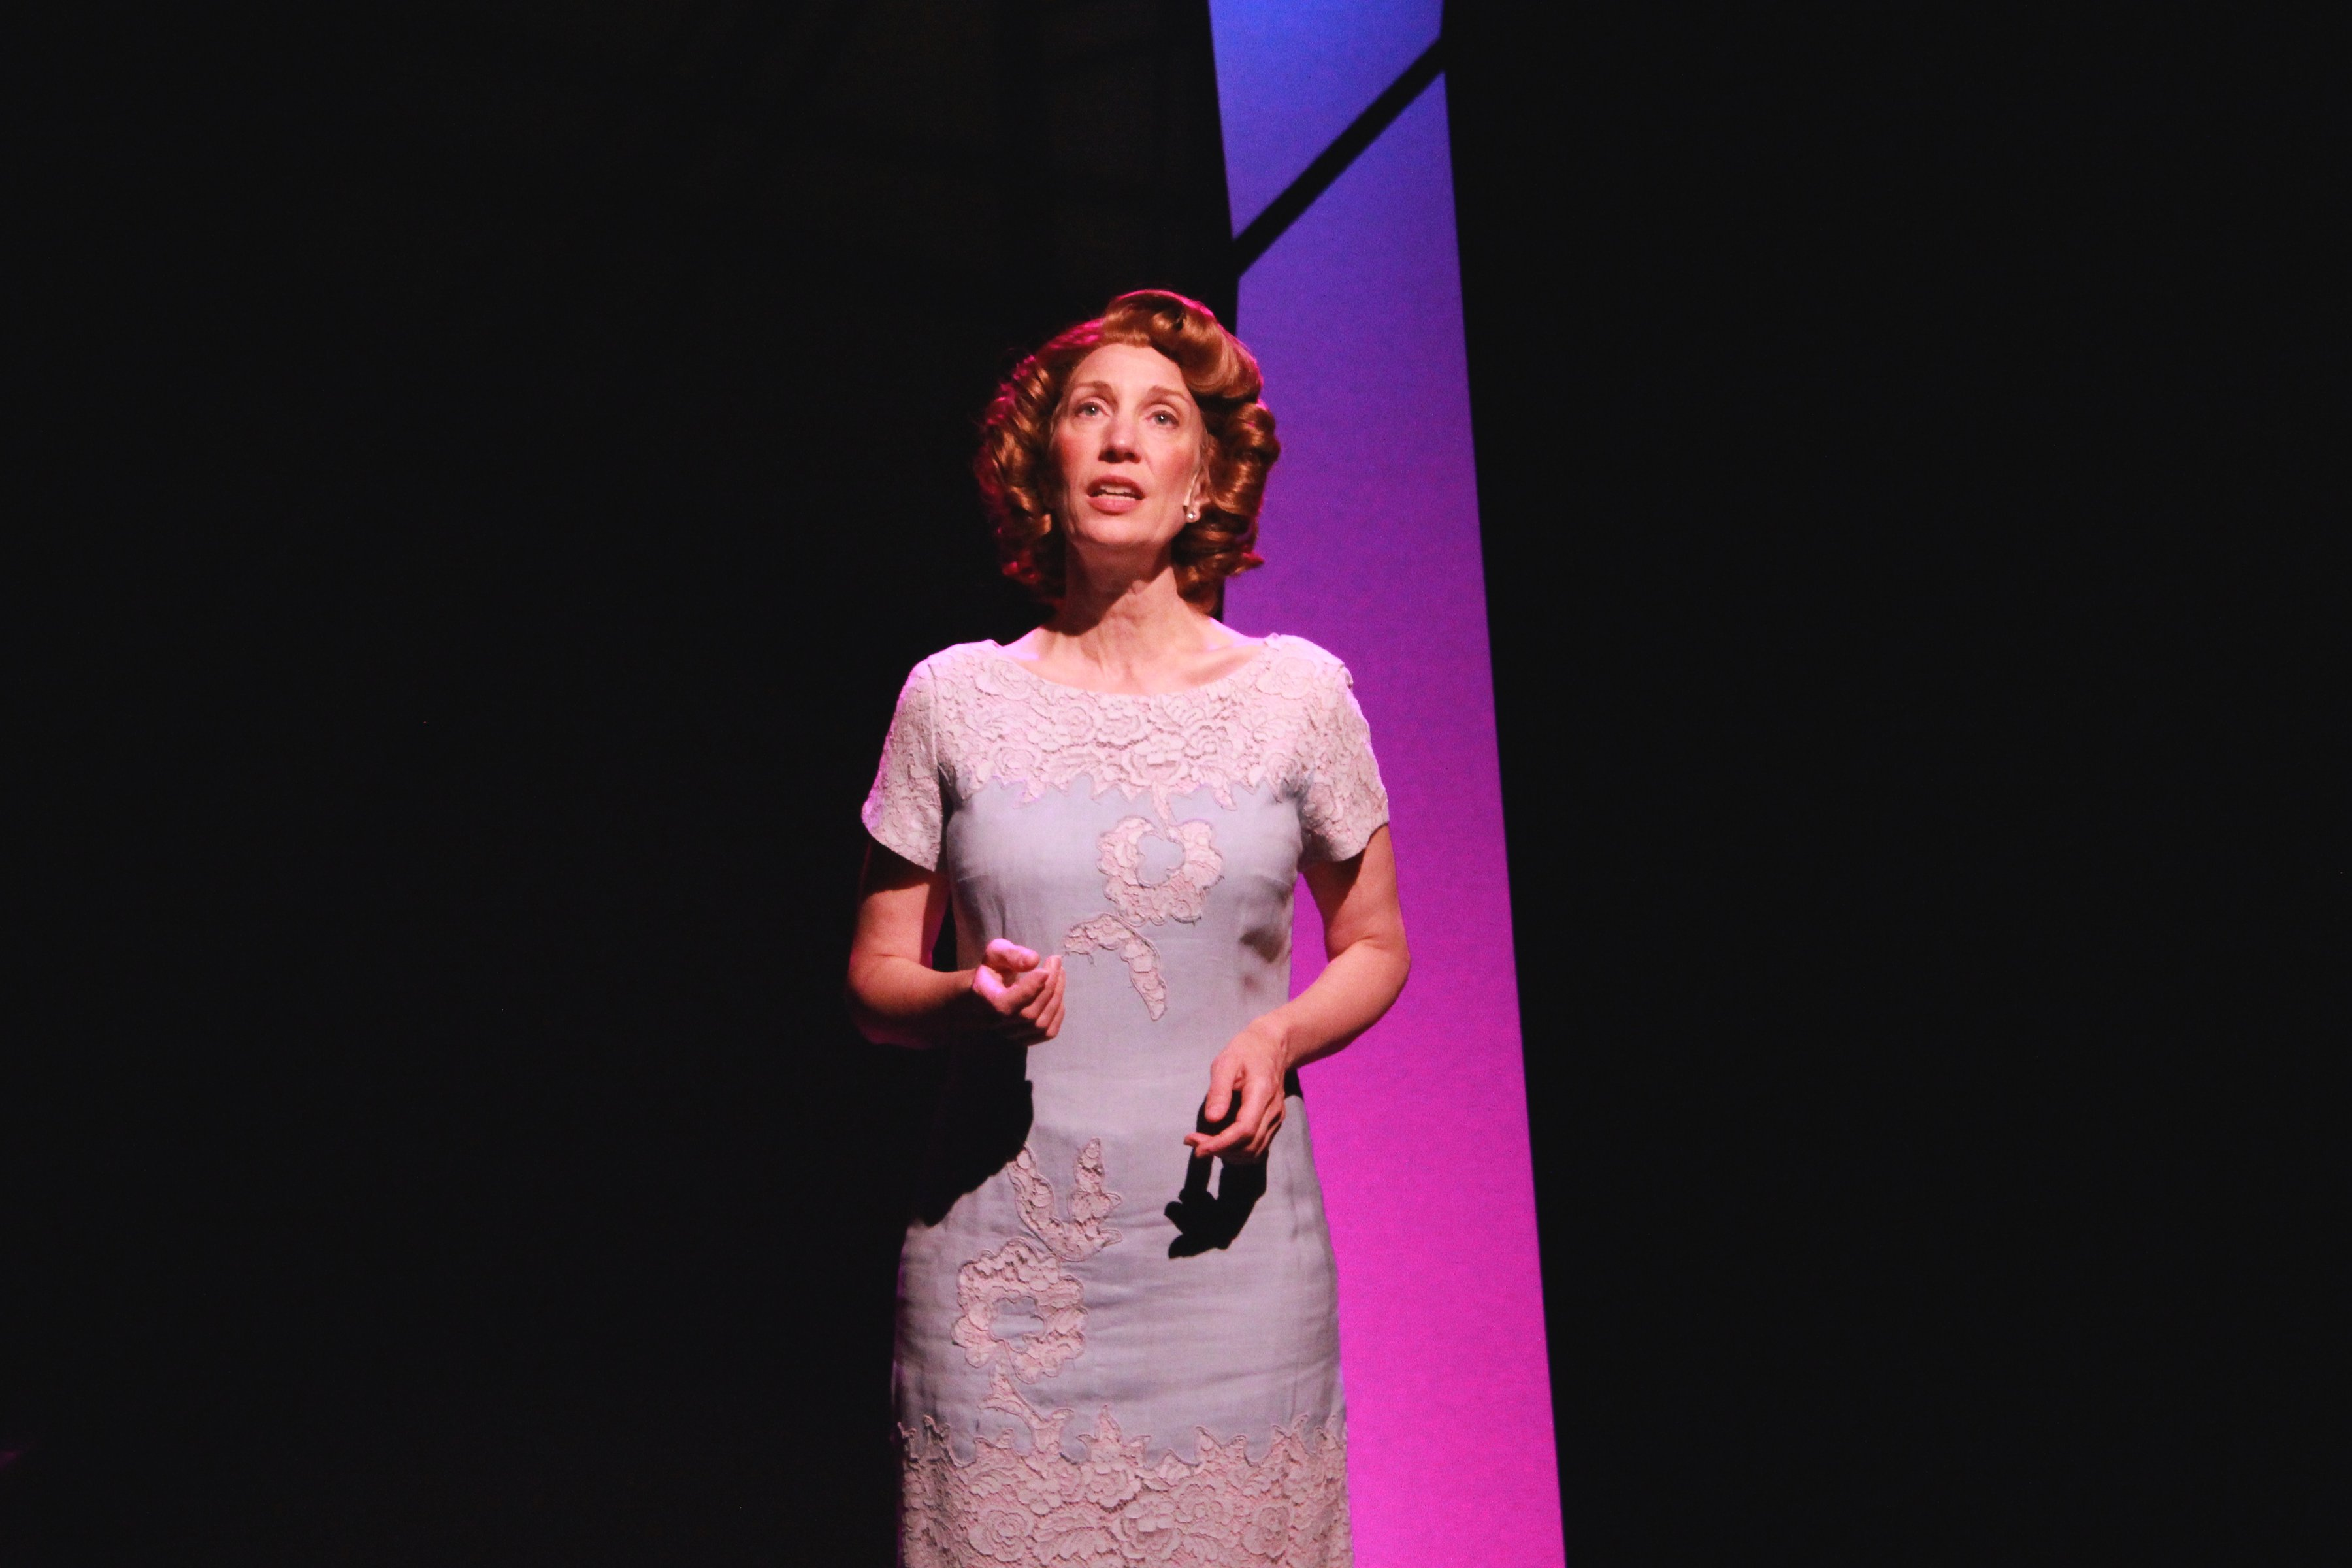 Debbie Pappas stars as Rosemary Clooney in 'Tenderly: The Rosemary Clooney Musical' at MusicalFare Theatre.